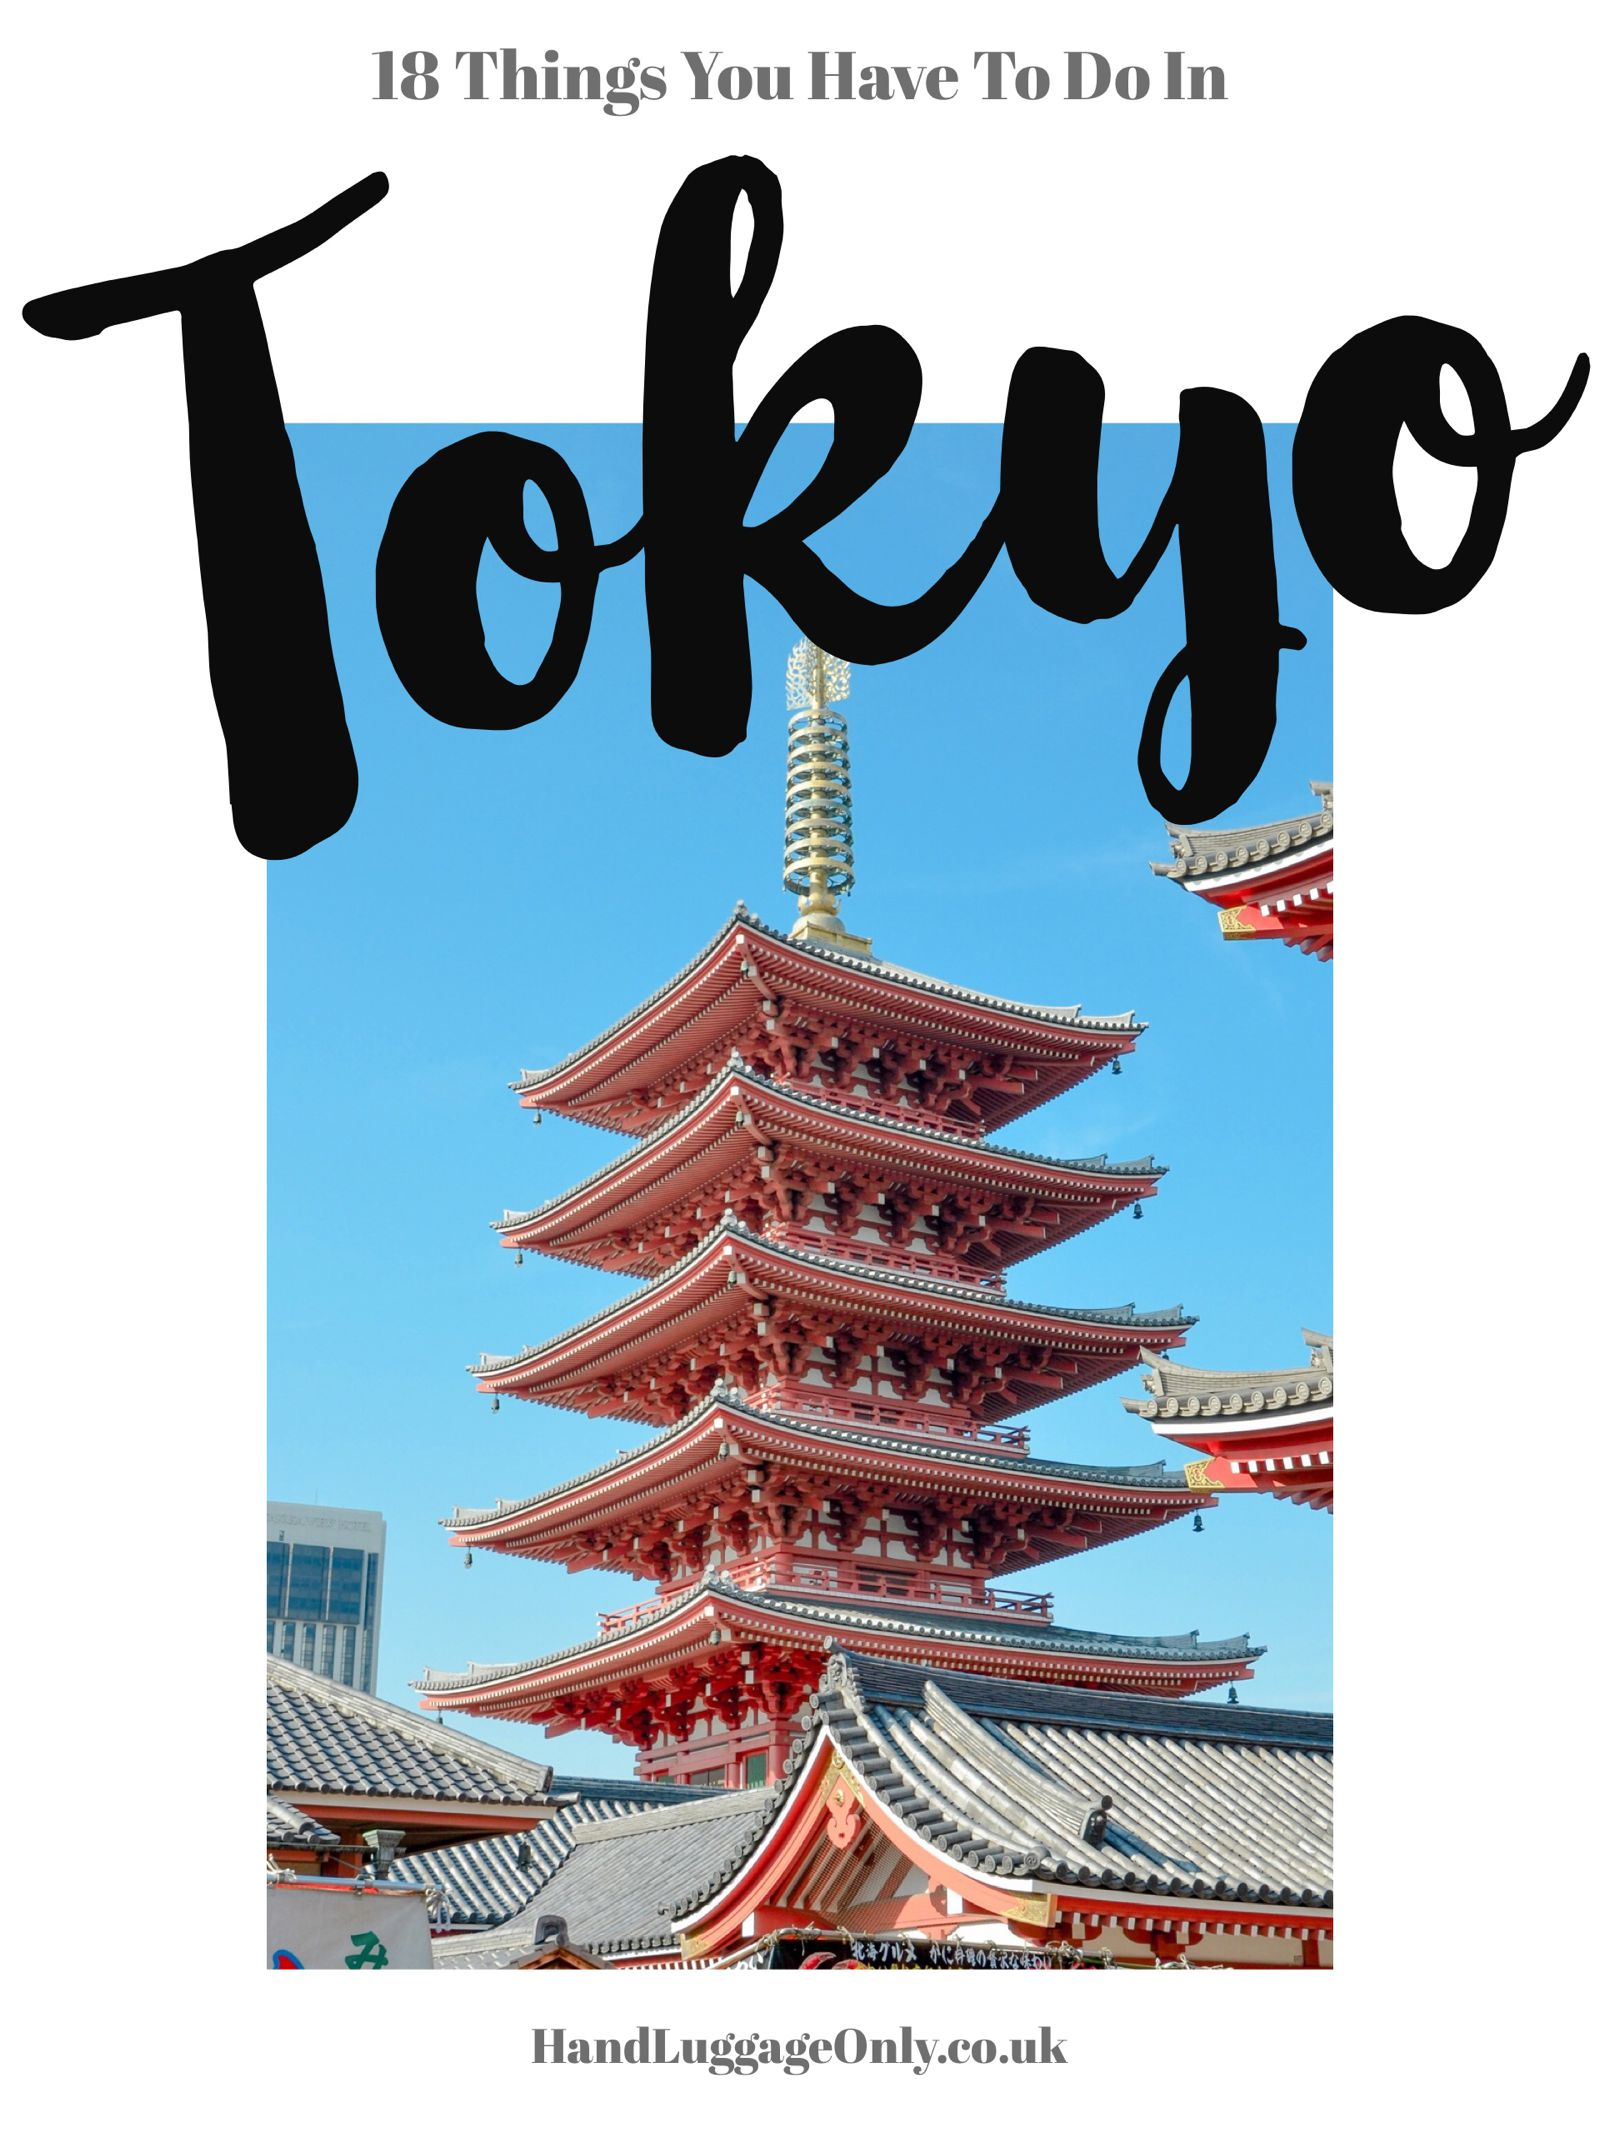 18 Fun Things You Have To See And Do In Tokyo (2)